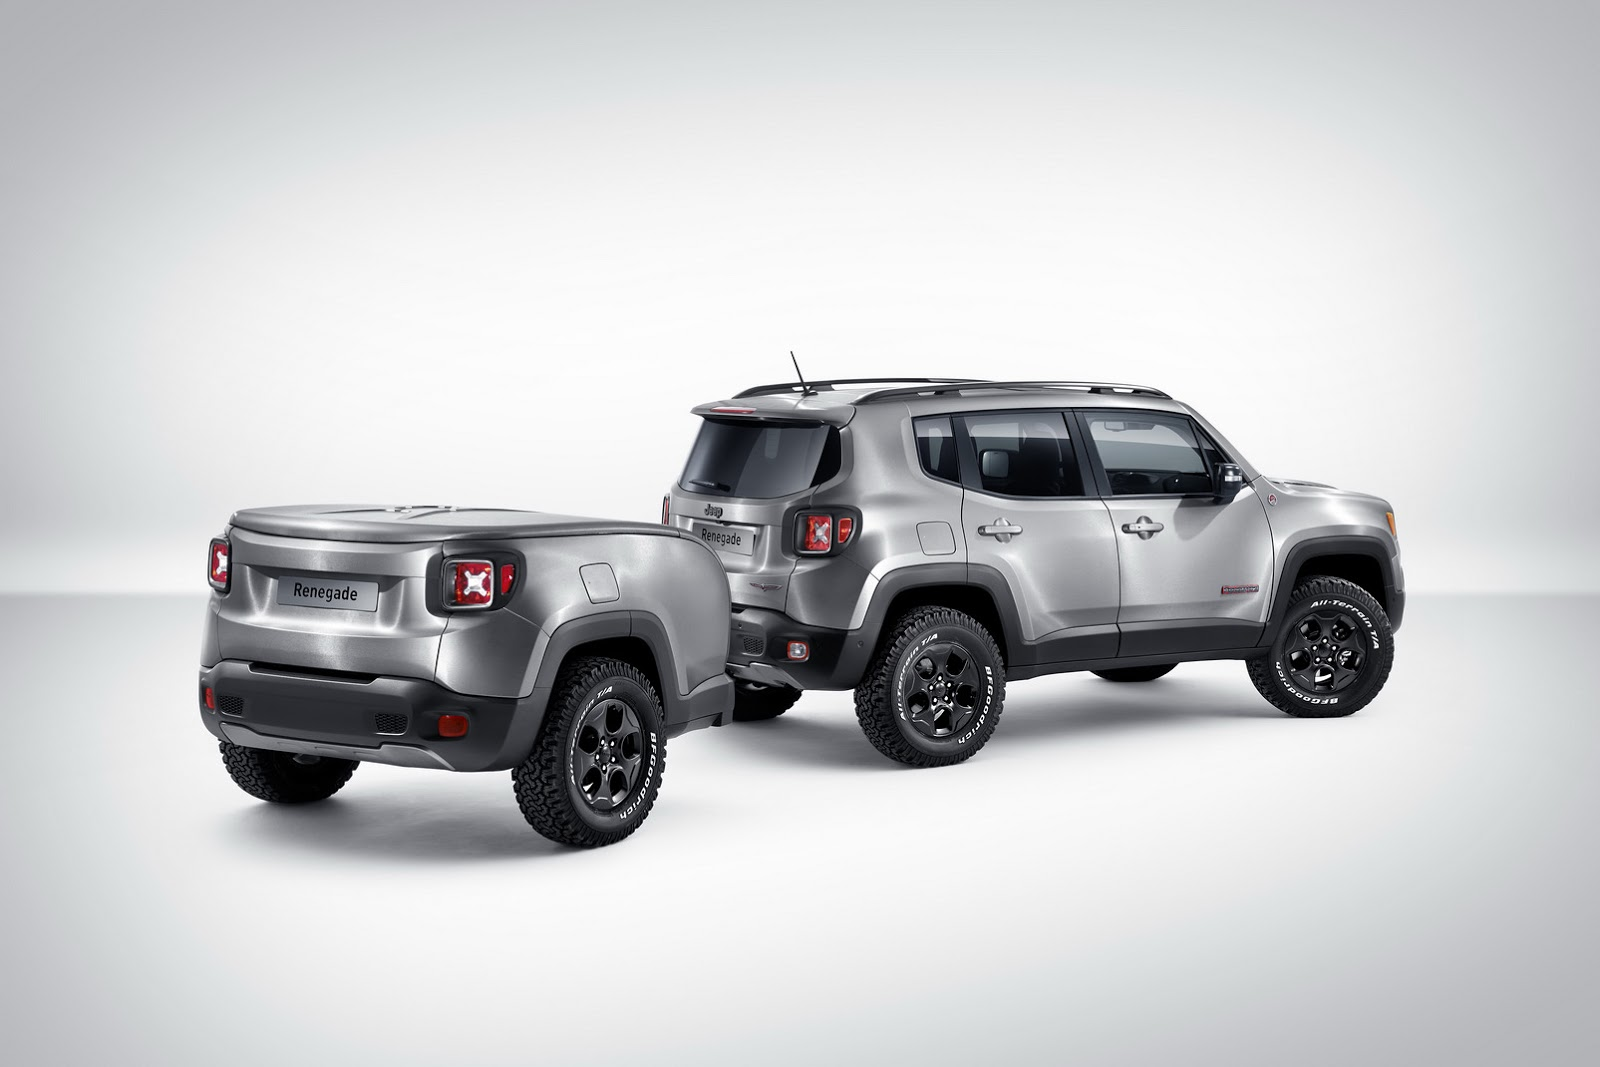 Jeep Renegade Hard Steel Concept 2015 01